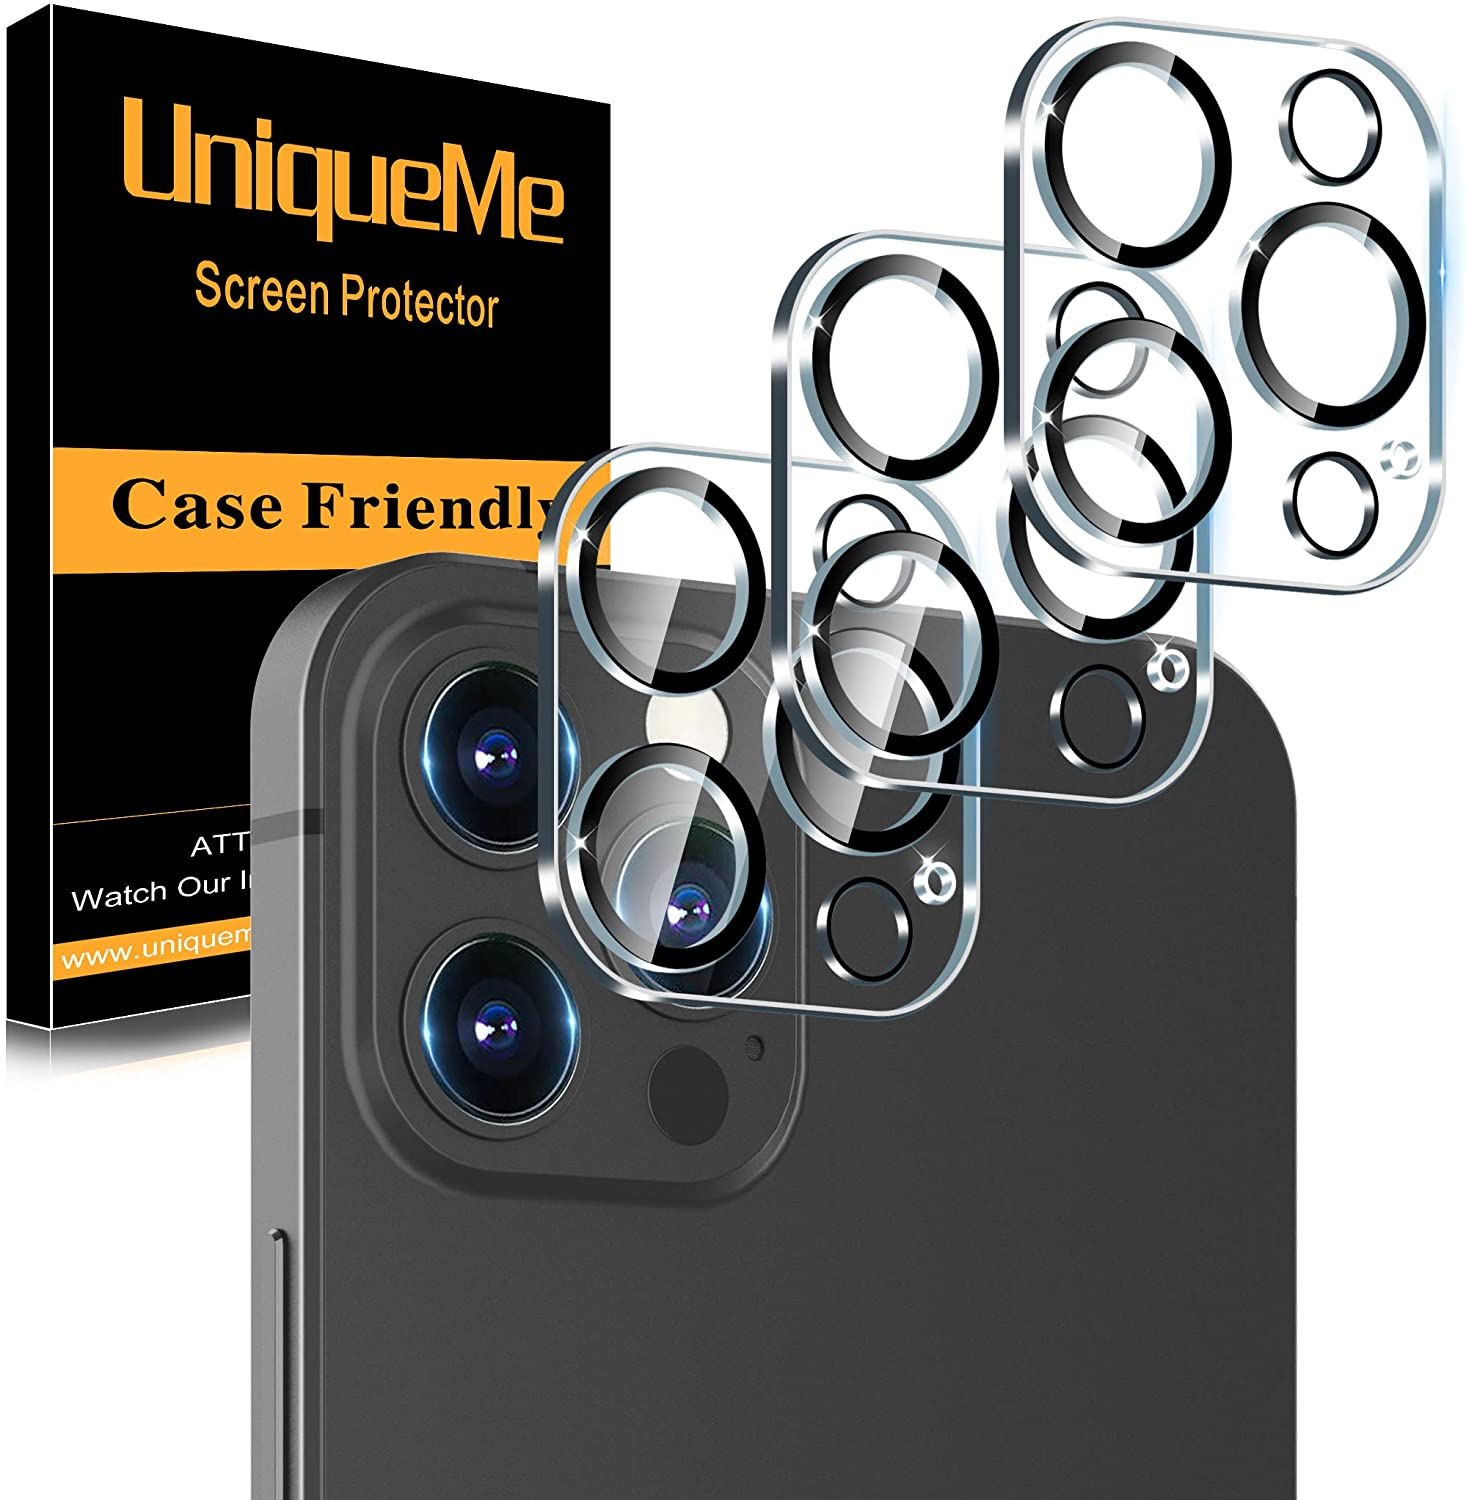 UniqueMe Screen Protector Compatible with iPhone 12 Pro Max 5G 6.7 inch Tempered Glass【NOT for iPhone 12 Pro】 Bubble Free 3 Pack HD Clear Anti-Scratch Easy Installation Frame